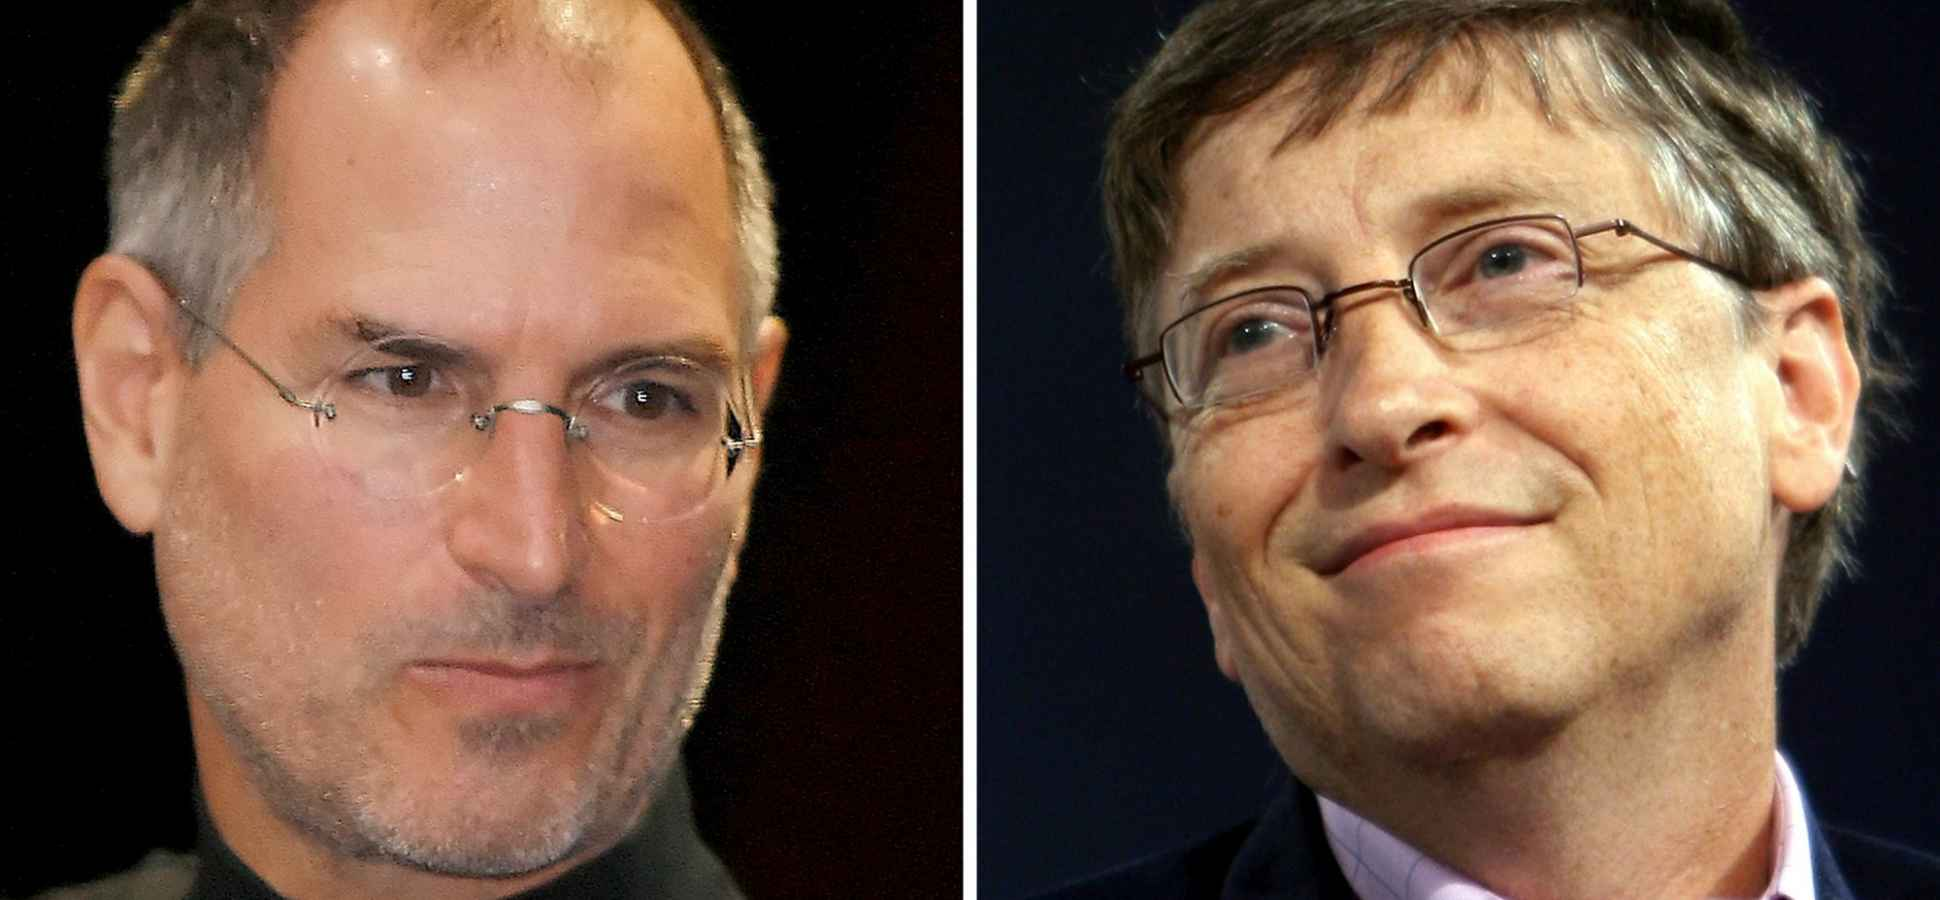 Steve Jobs and Bill Gates Dropped Out of School, So Why Shouldn't I?